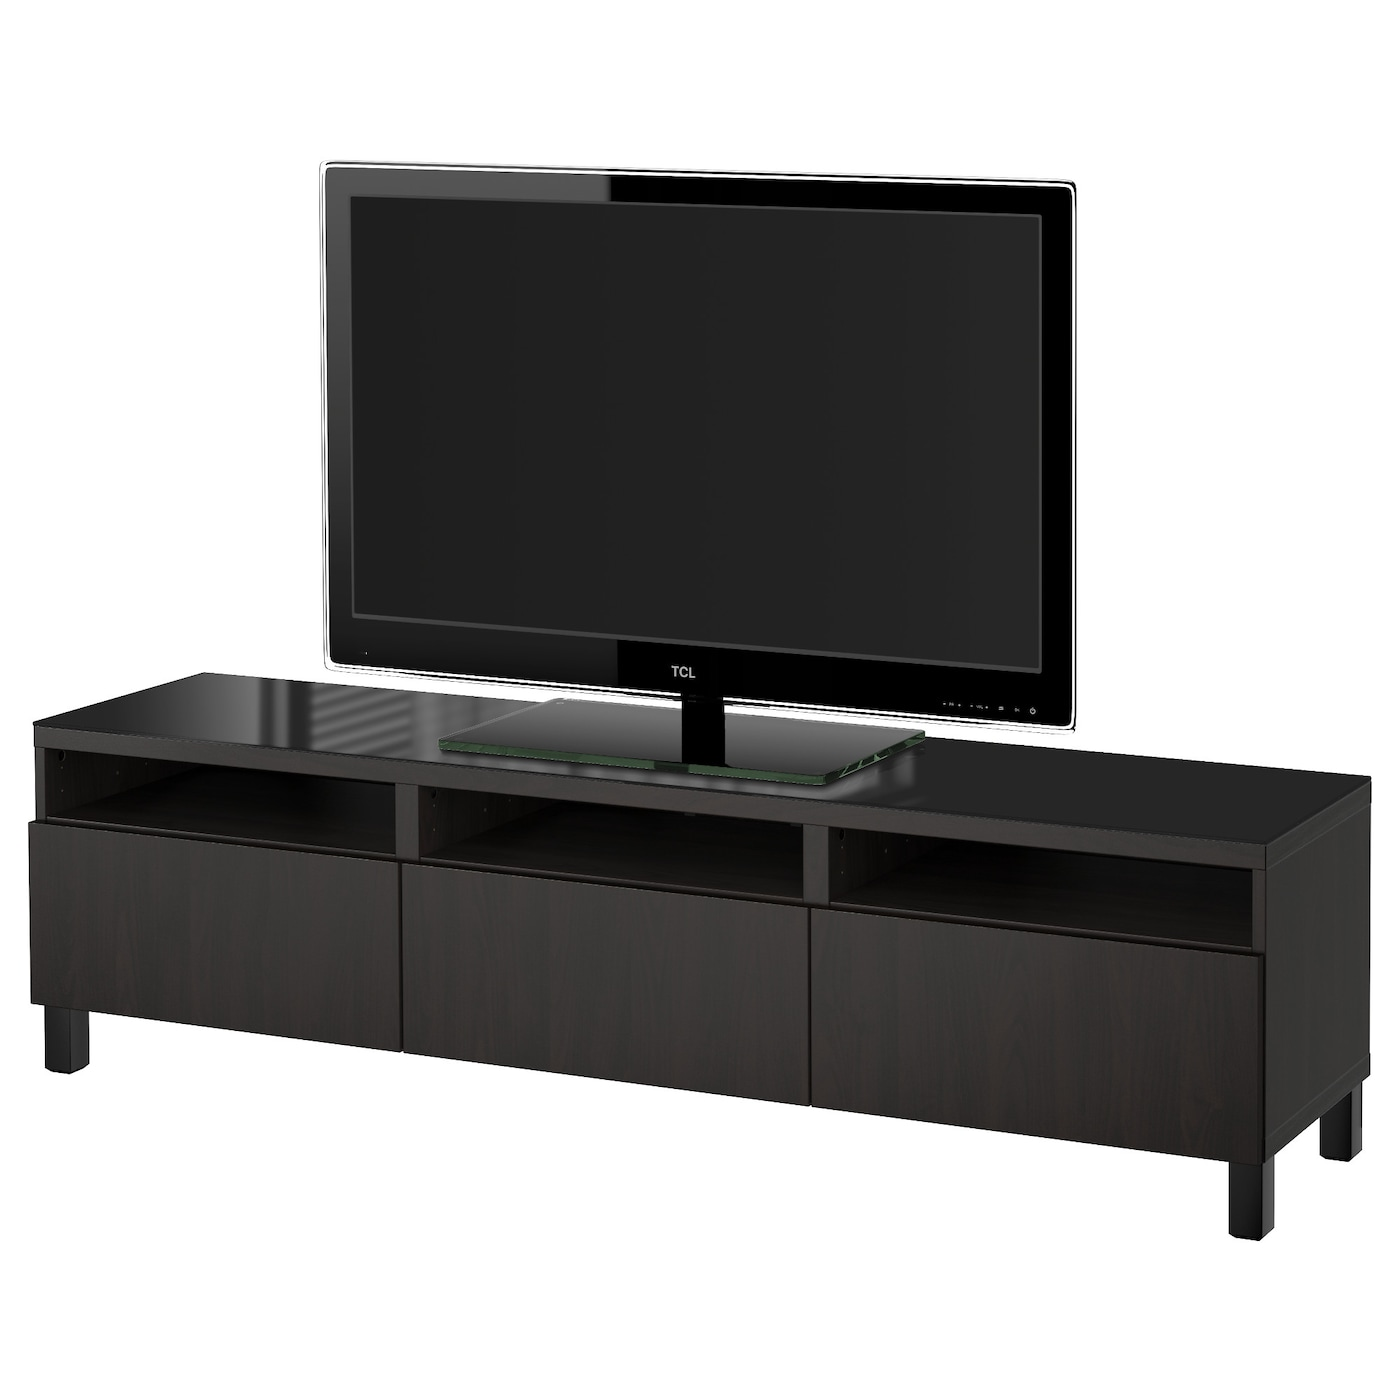 black stand media faux fernbrook master hayneedle product grain bench corliving tv cfm wood